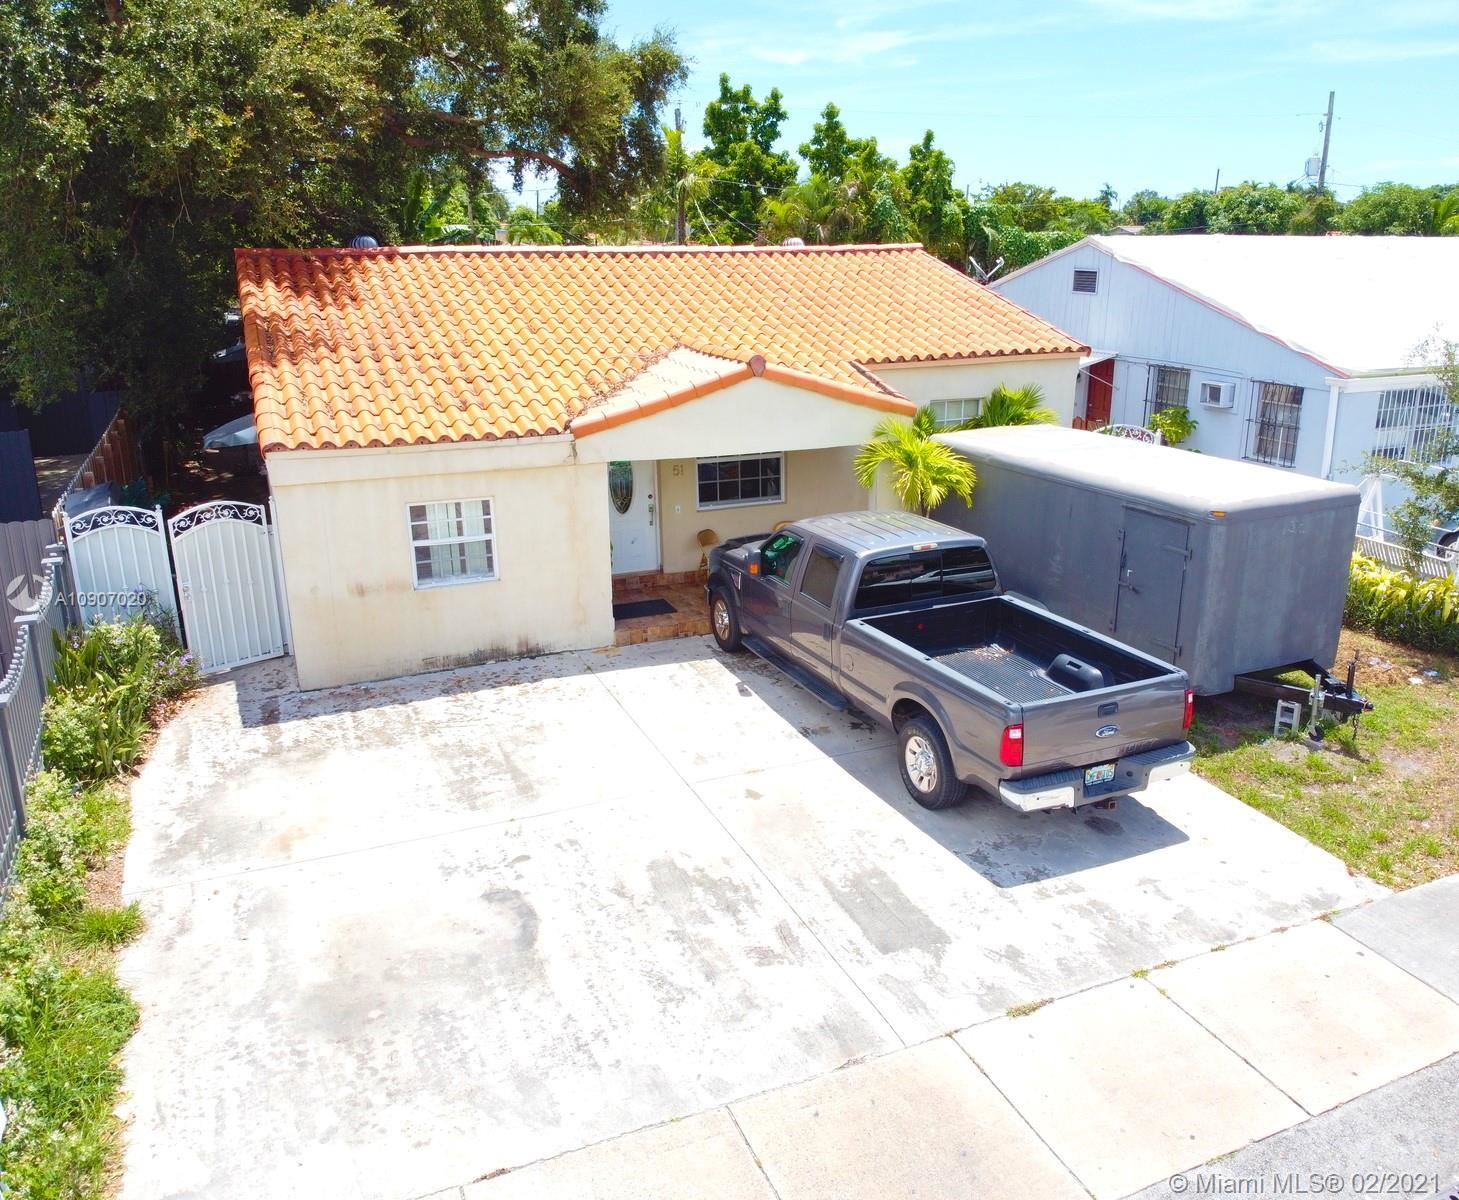 51 SW 58th Ct, Miami, FL 33144 - #: A10907020